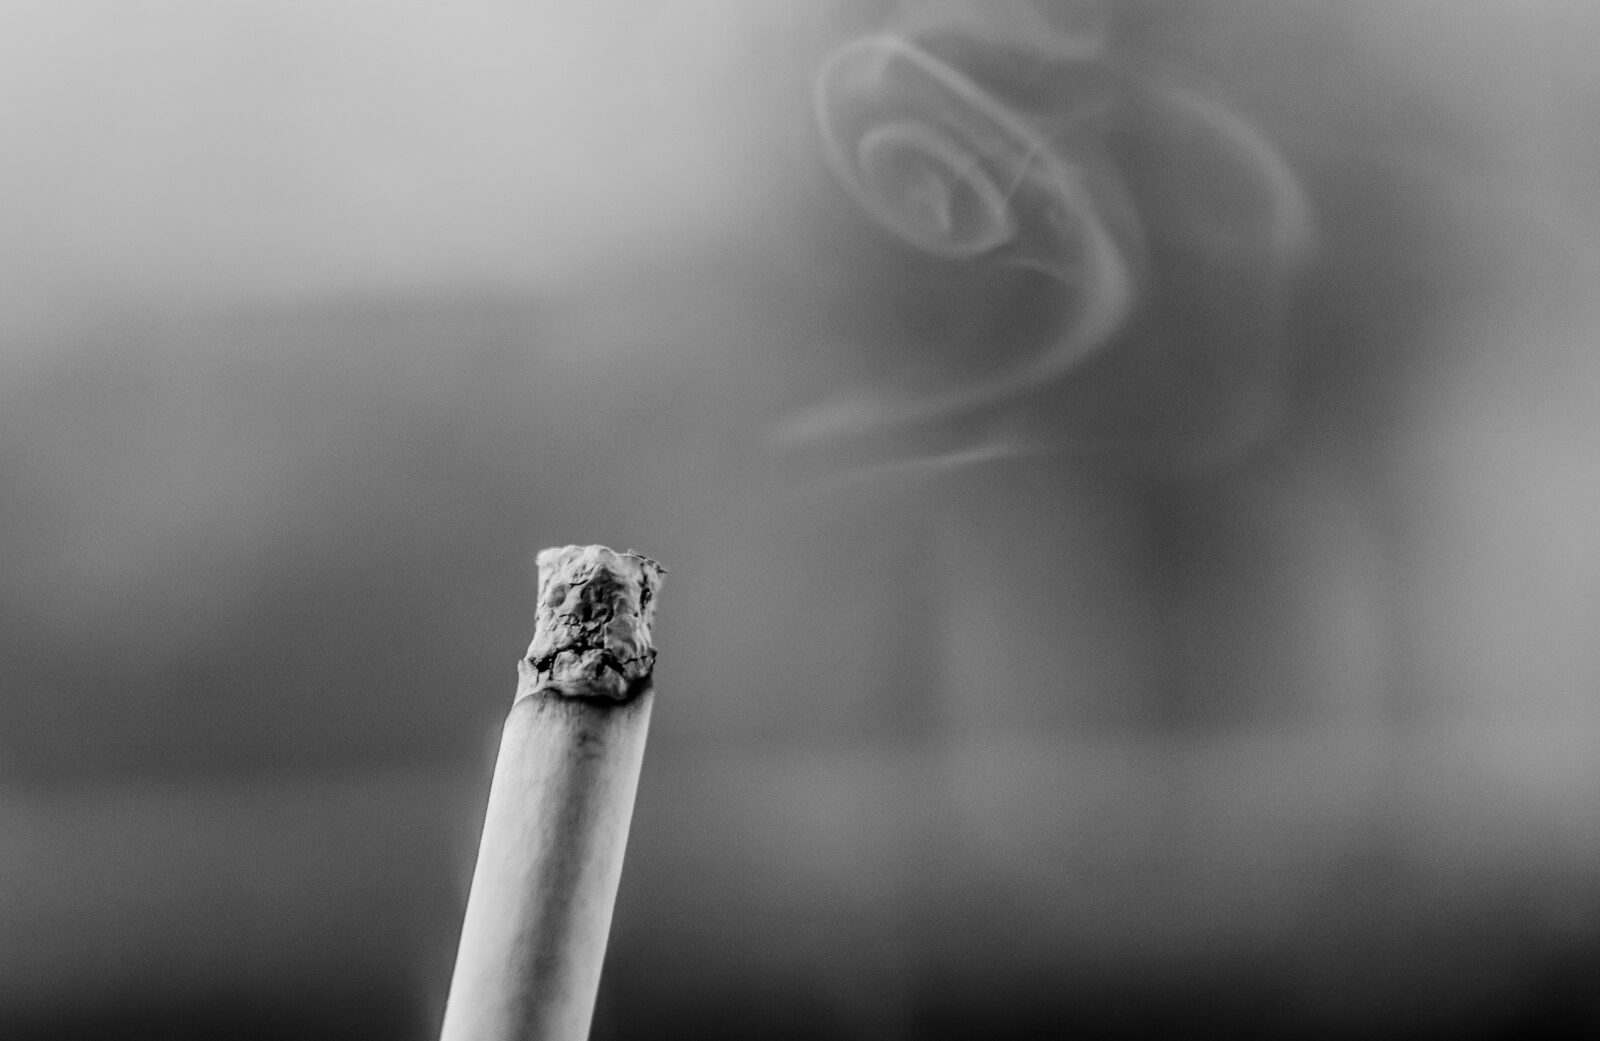 Tobacco Companies Owe $3 Million in Punitive Damages Over Smoker's Death